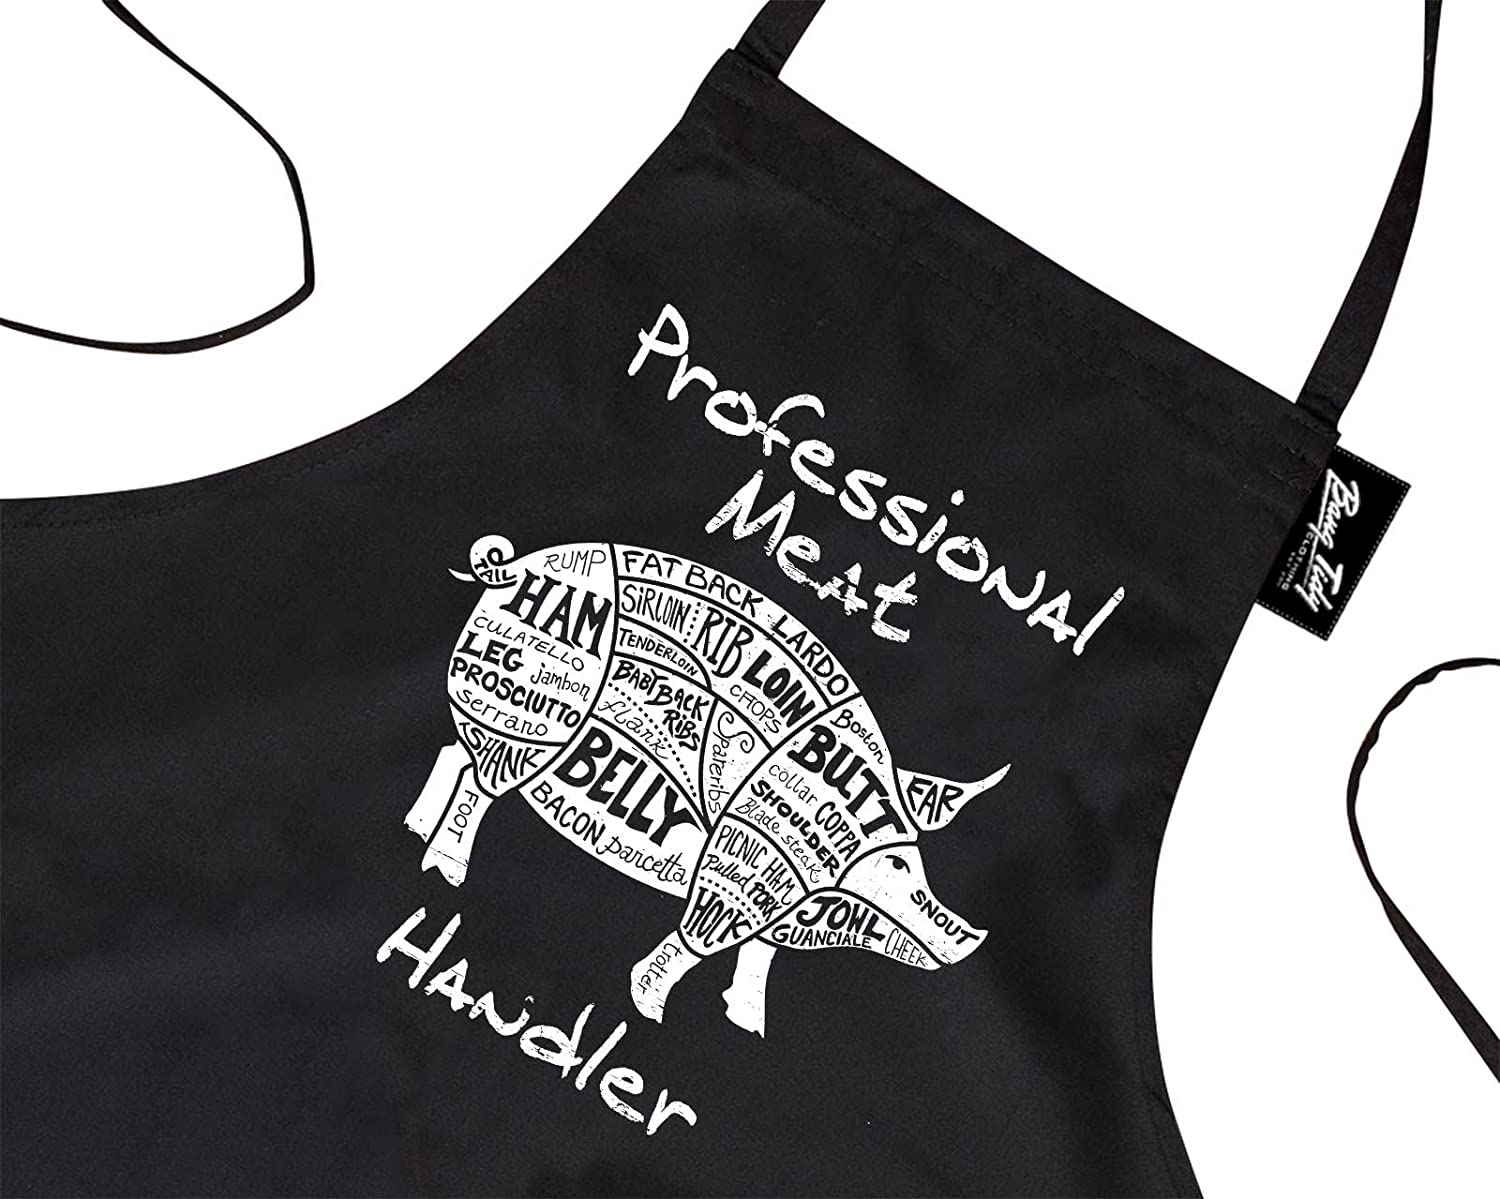 Bang Tidy Clothing Funny BBQ Apron Novelty Aprons Cooking Gifts for Men Professional Meat Handler Black One Size FD4806P1